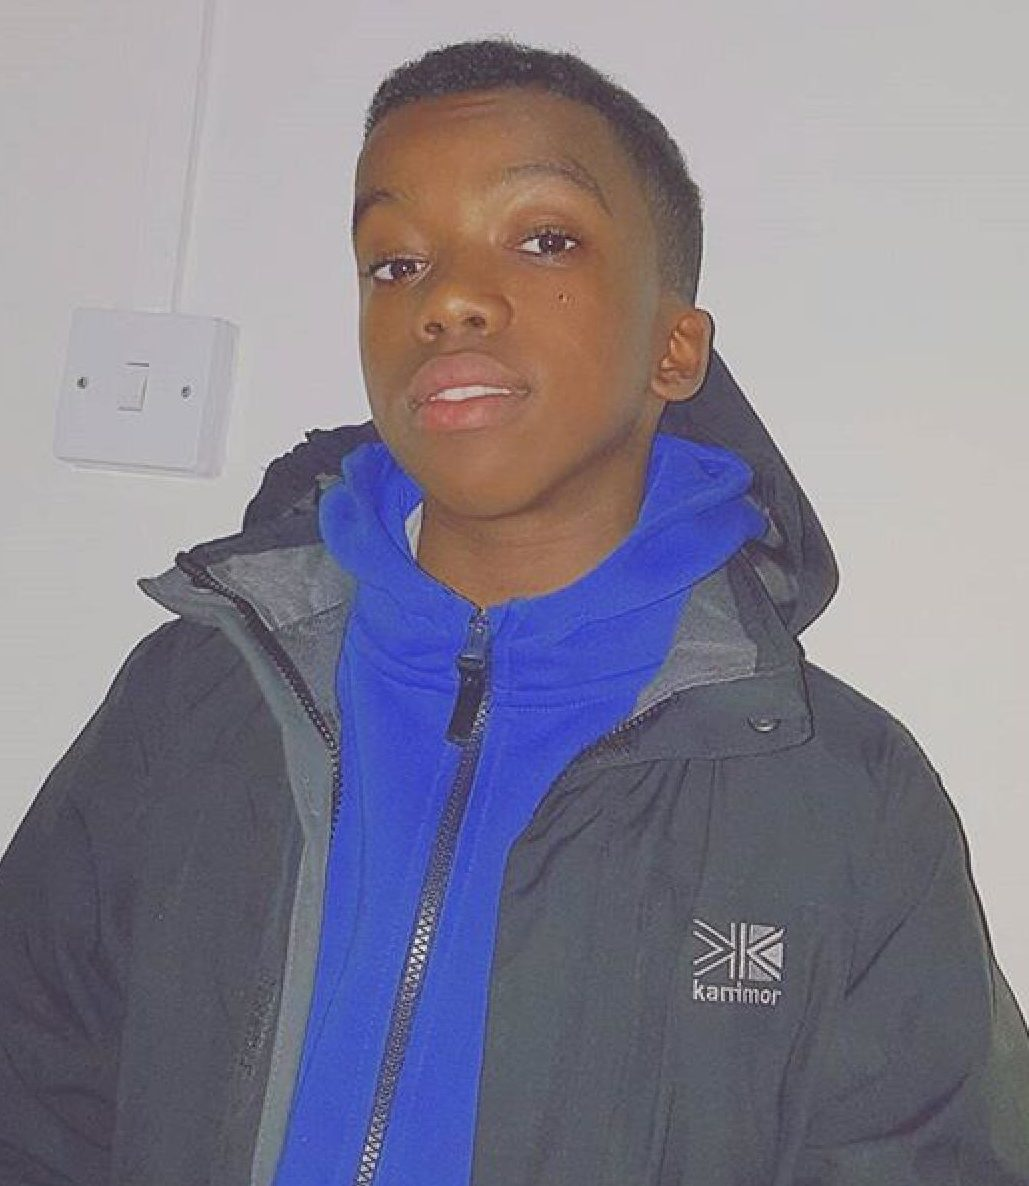 Boys 'mowed down cyclist before gang beat him to death'